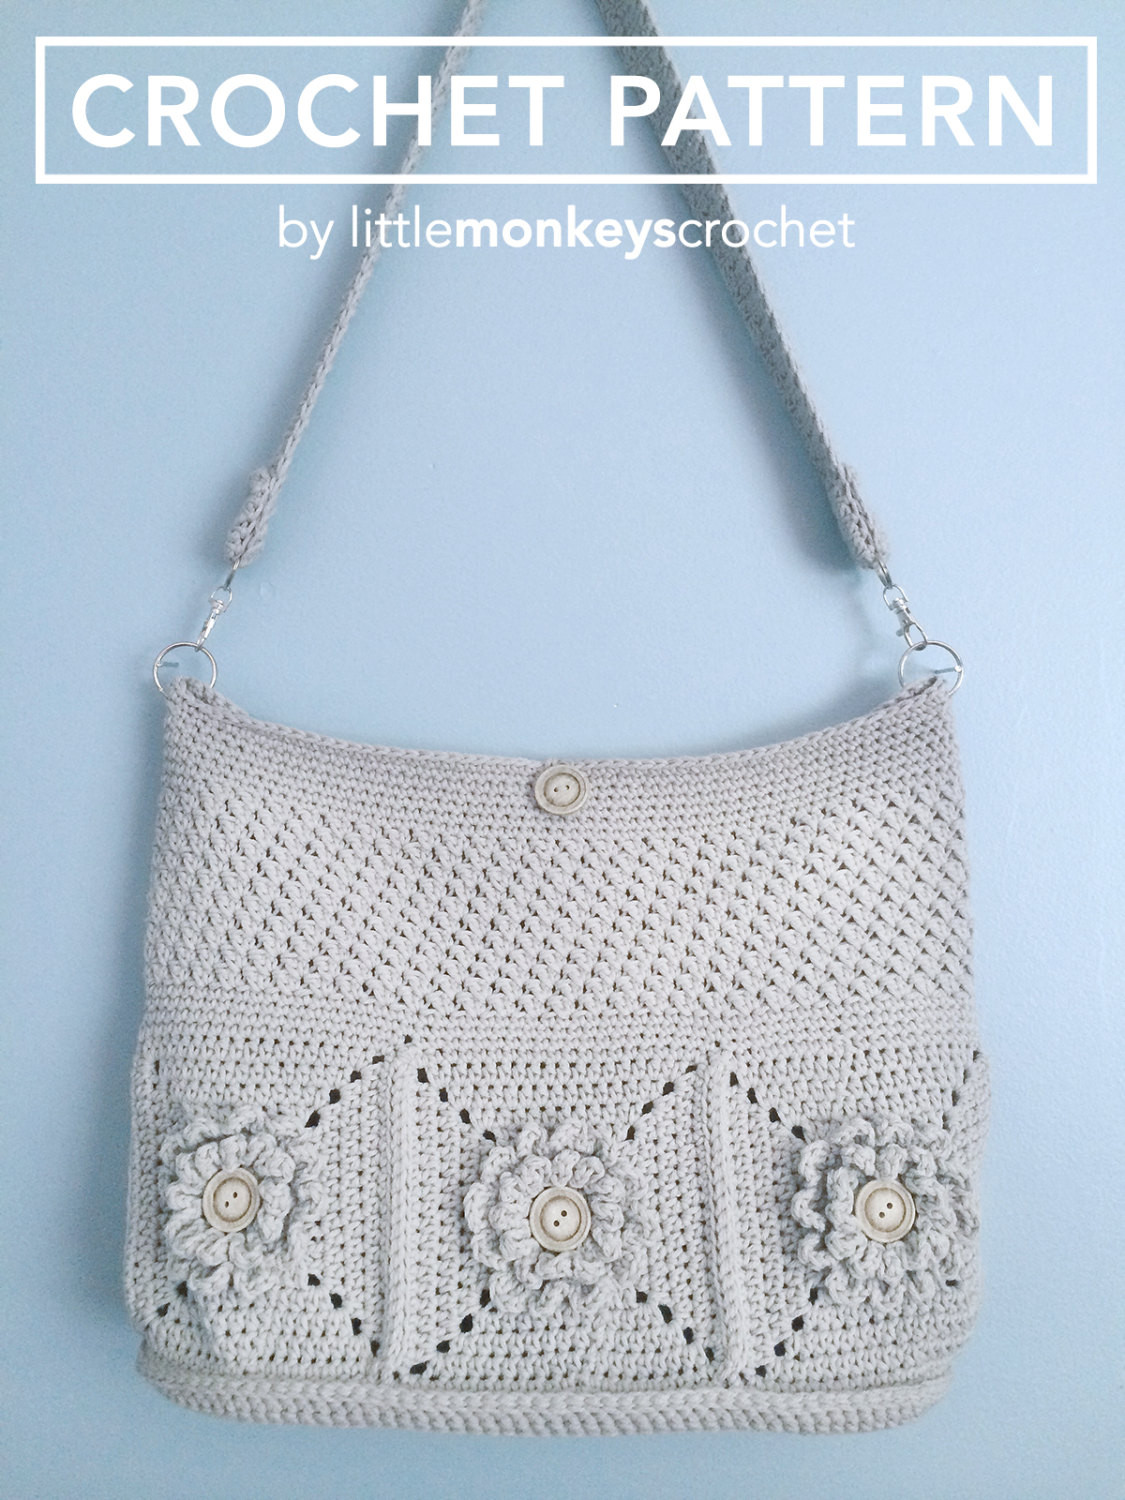 Crochet Purse Pattern Inspirational Purse Crochet Pattern Crochet Shoulder Bag Pattern the Of Adorable 44 Photos Crochet Purse Pattern